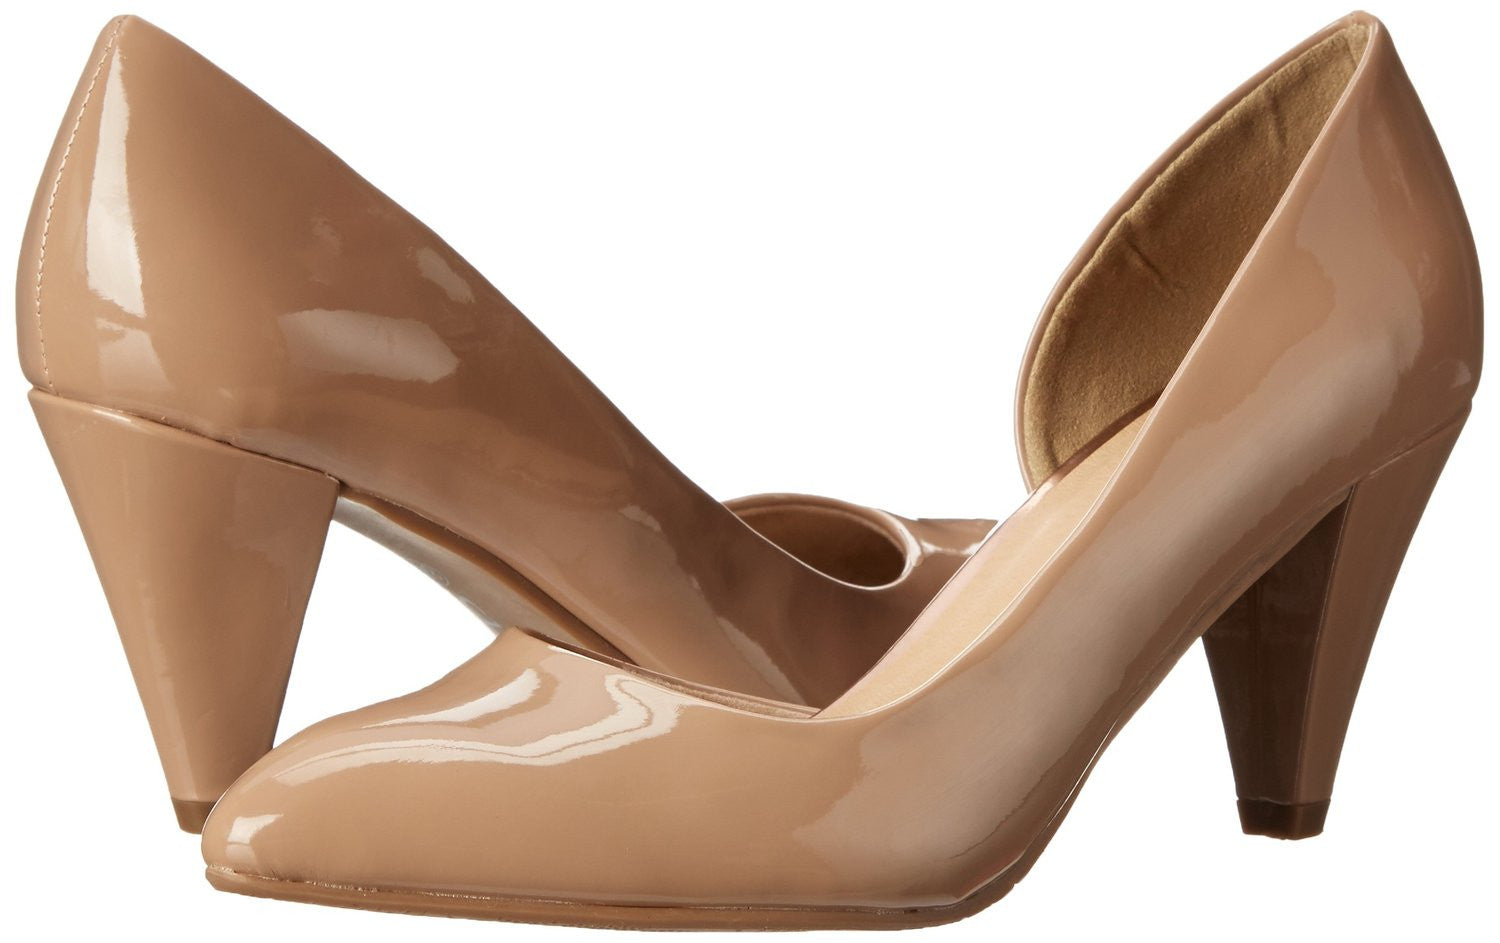 74d8150ca5 CL BY CHINESE LAUNDRY Black Angelina Vegan Patent Dress Pumps. New Nude.  Size 10